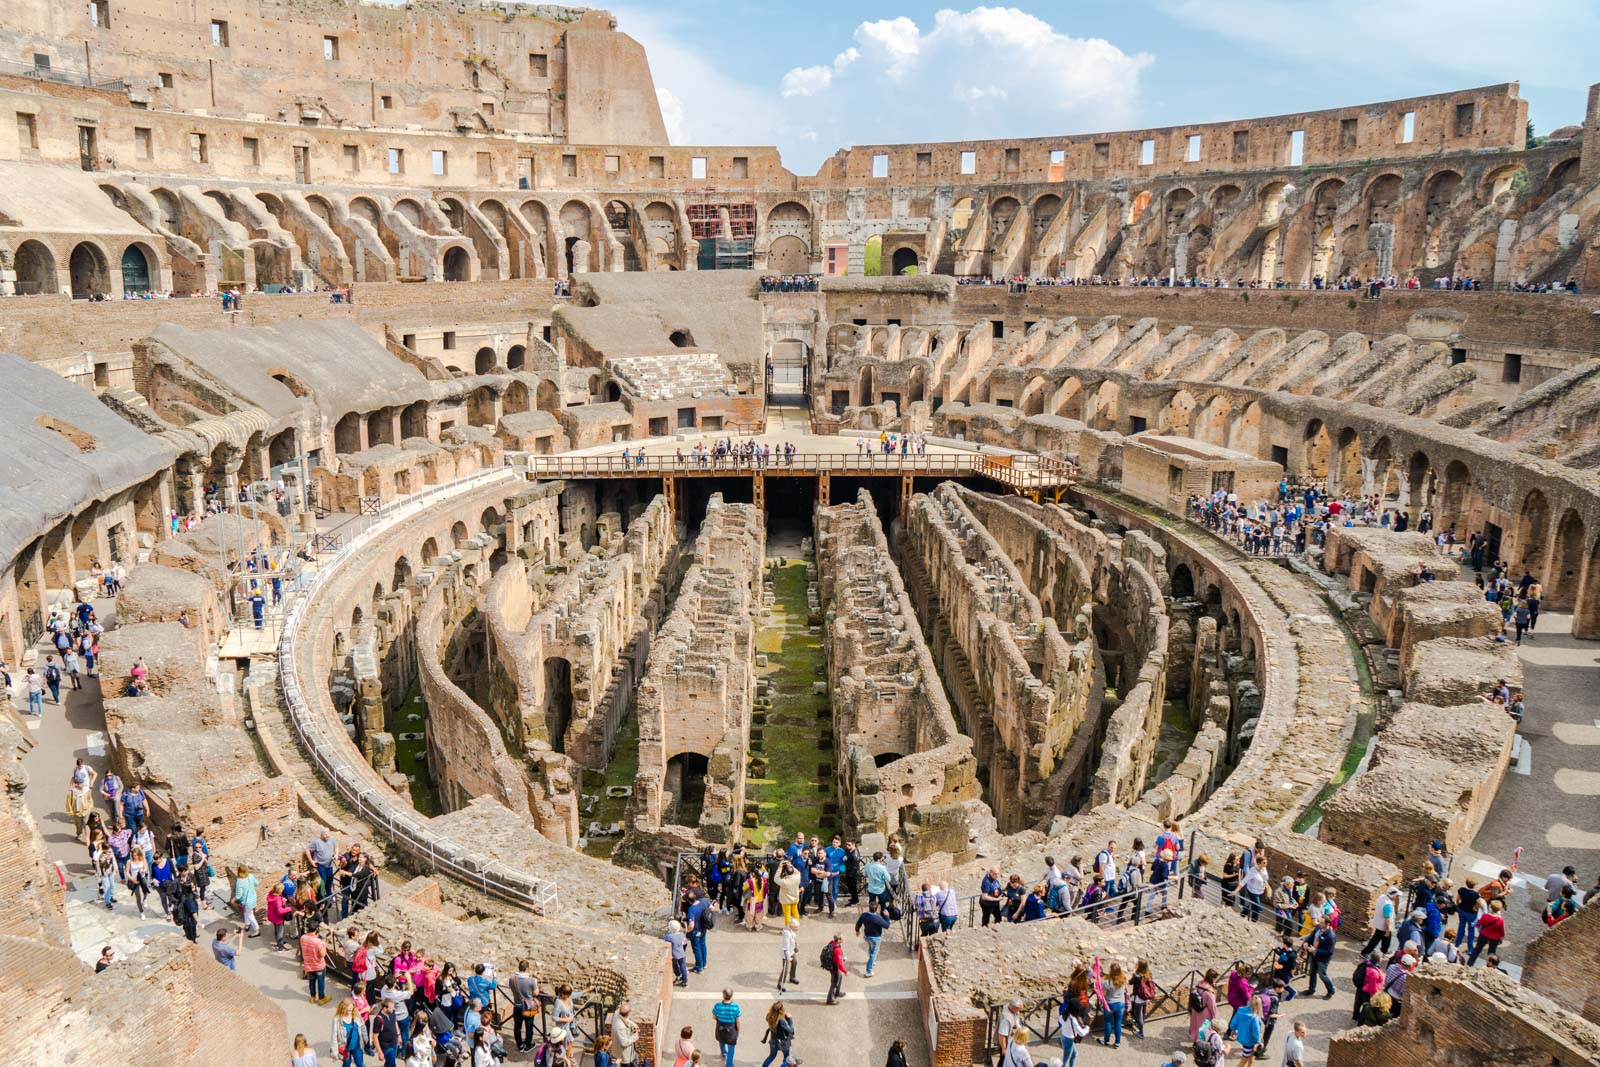 Visiting The Colosseum In Rome